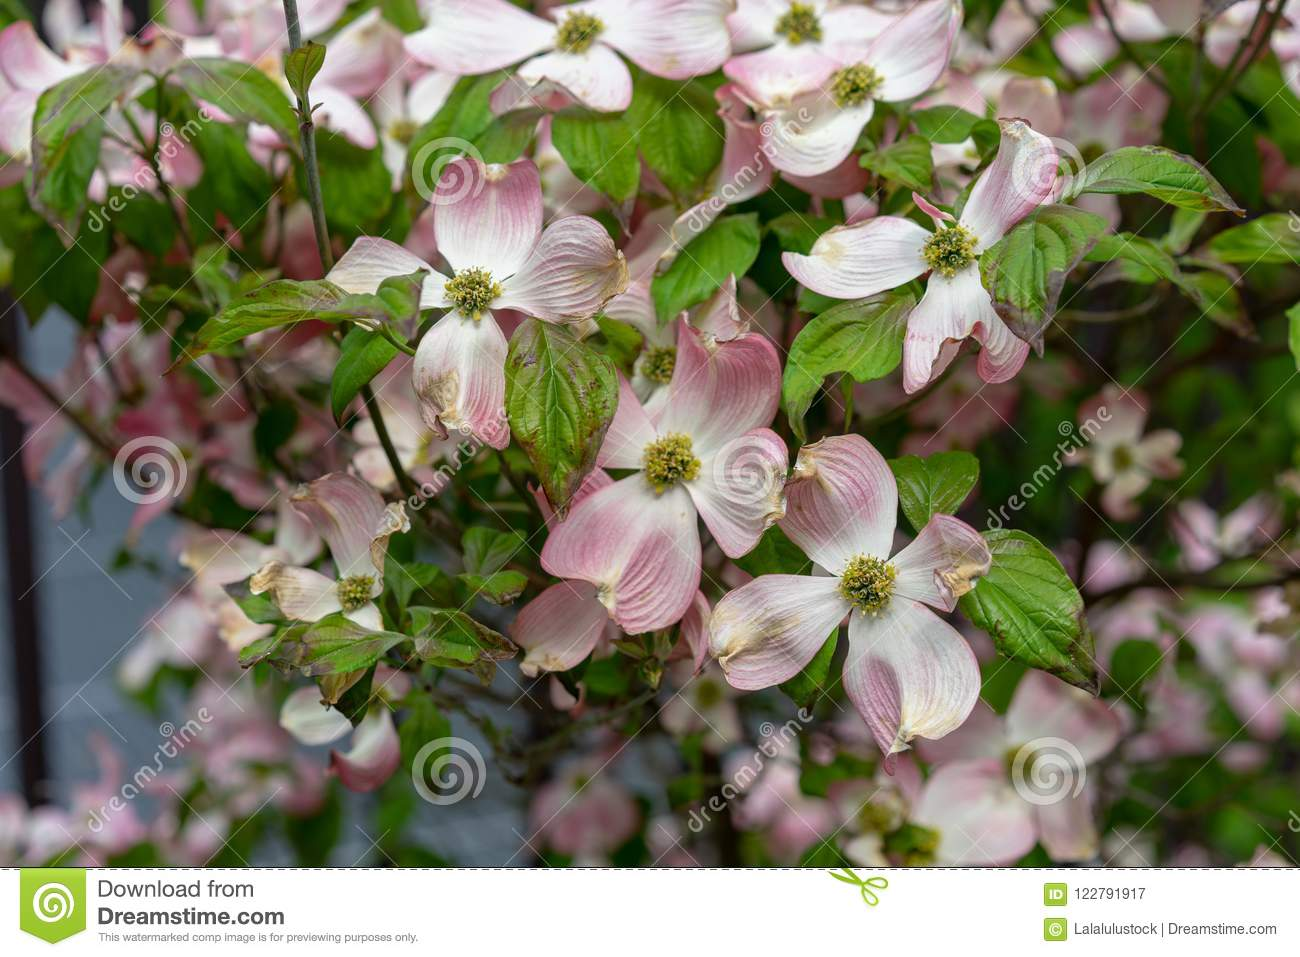 A Close Up View Of Pink Dogwood Flowers Cornus Florida Rubra Stock